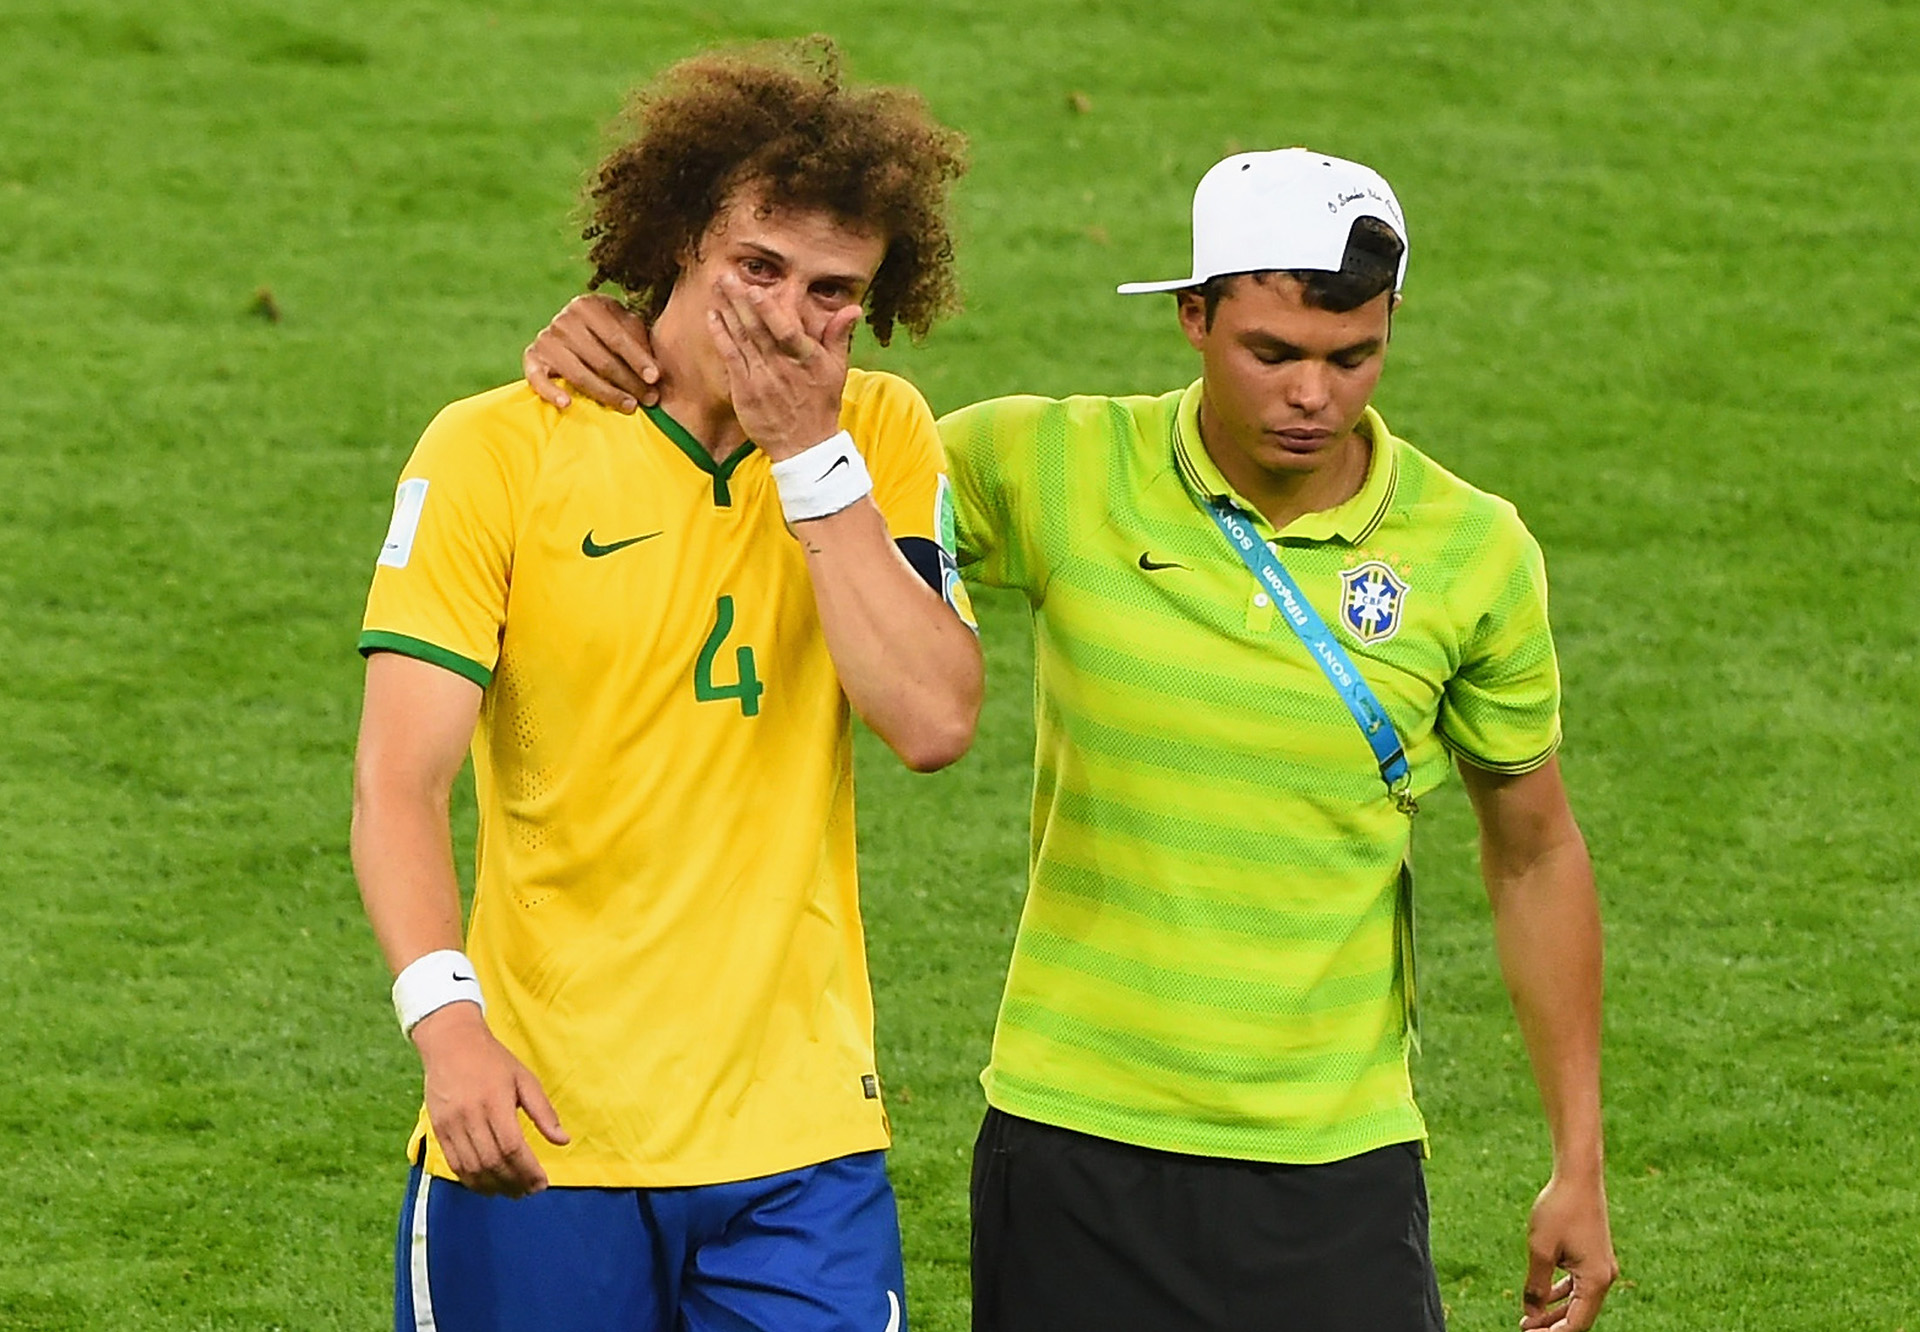 Missing me Thiago David Luiz having the last laugh at Chelsea